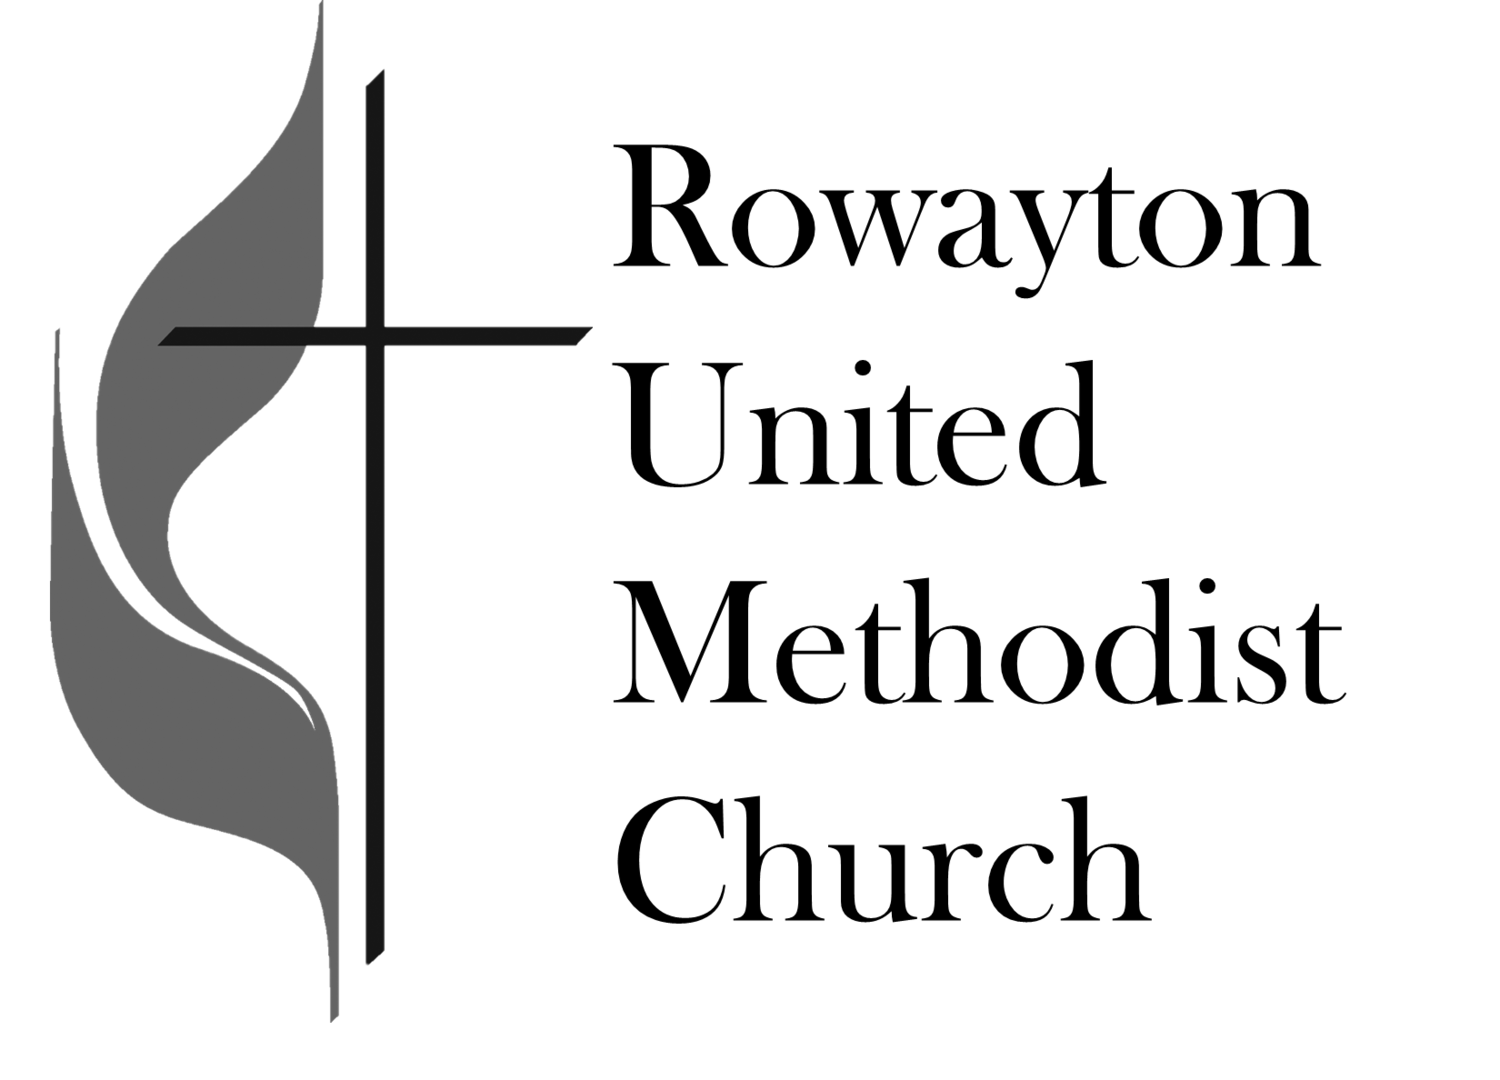 Rowayton United Methodist Church